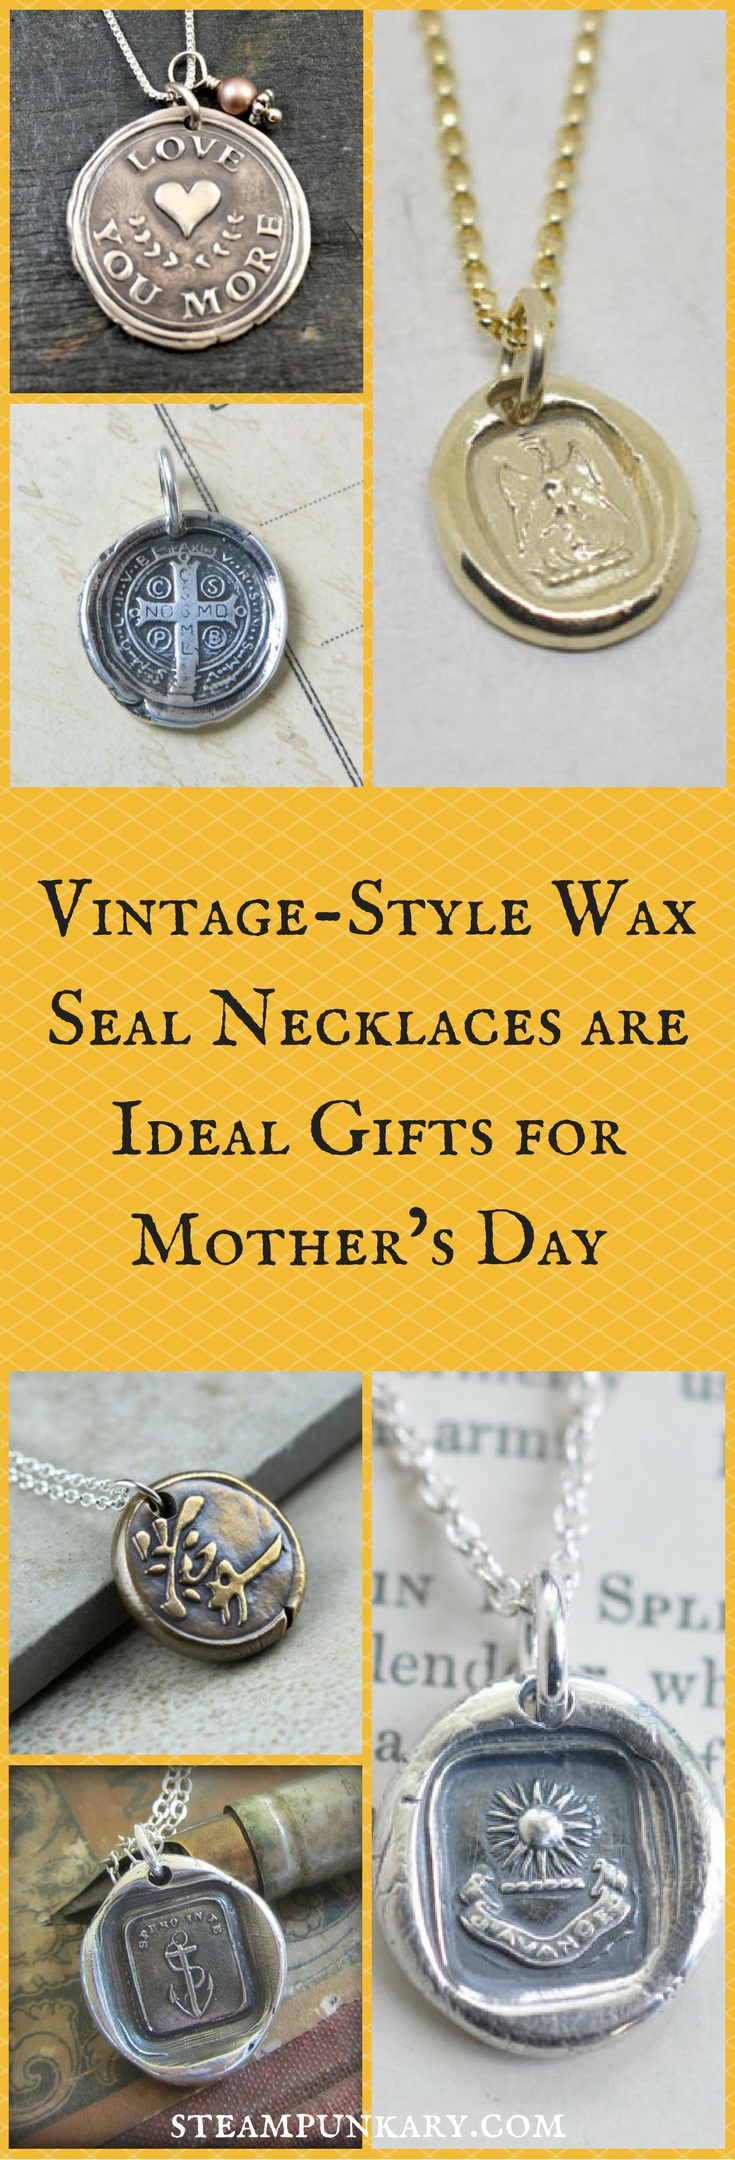 Vintage-Style Wax Seal Necklaces are Ideal Gifts for Mothers Day